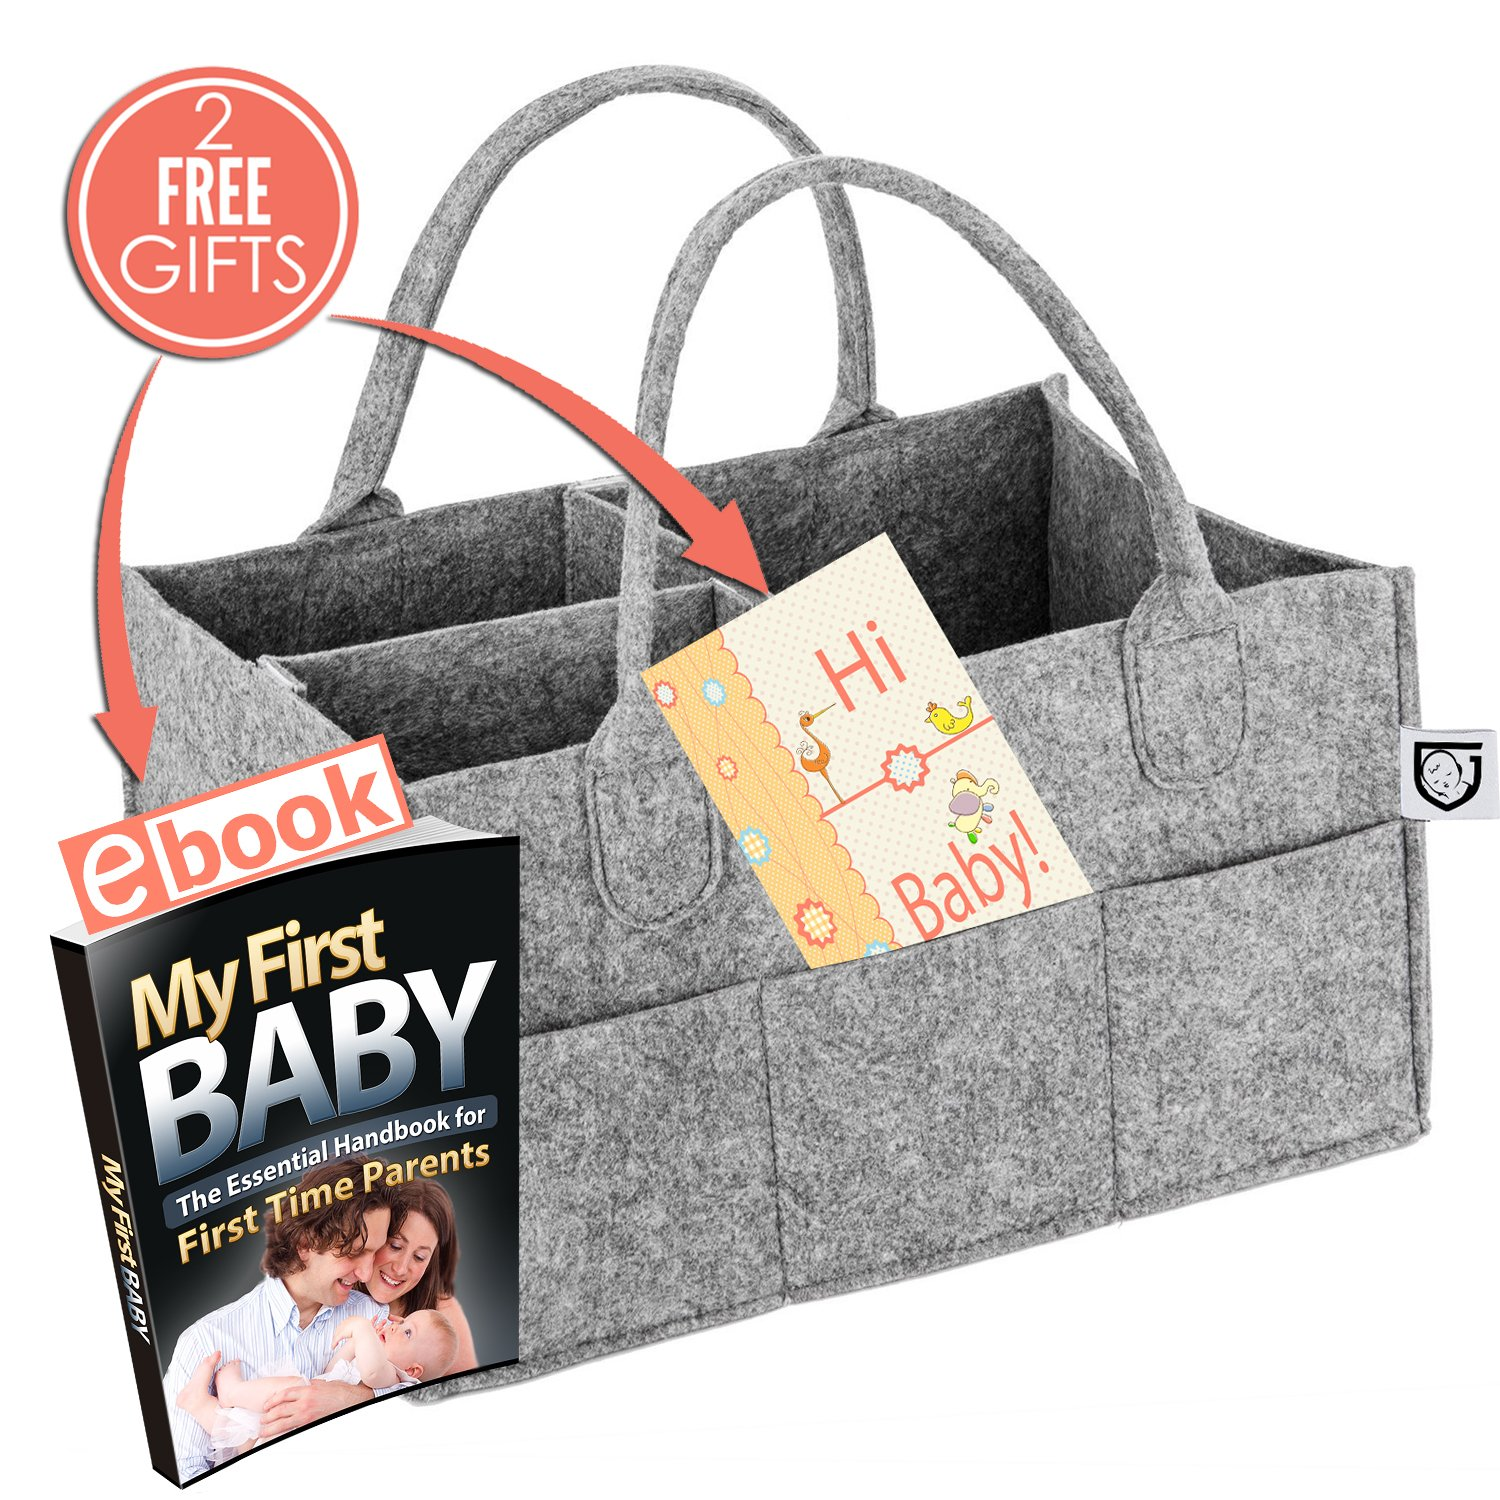 Baby Diaper Caddy Portable Organizer Storage Basket - Customizable Compartments to Carry More Items - Durable and Lightweight Nursery Travel Bin - Free Baby Shower Gifts Postcard is Included!